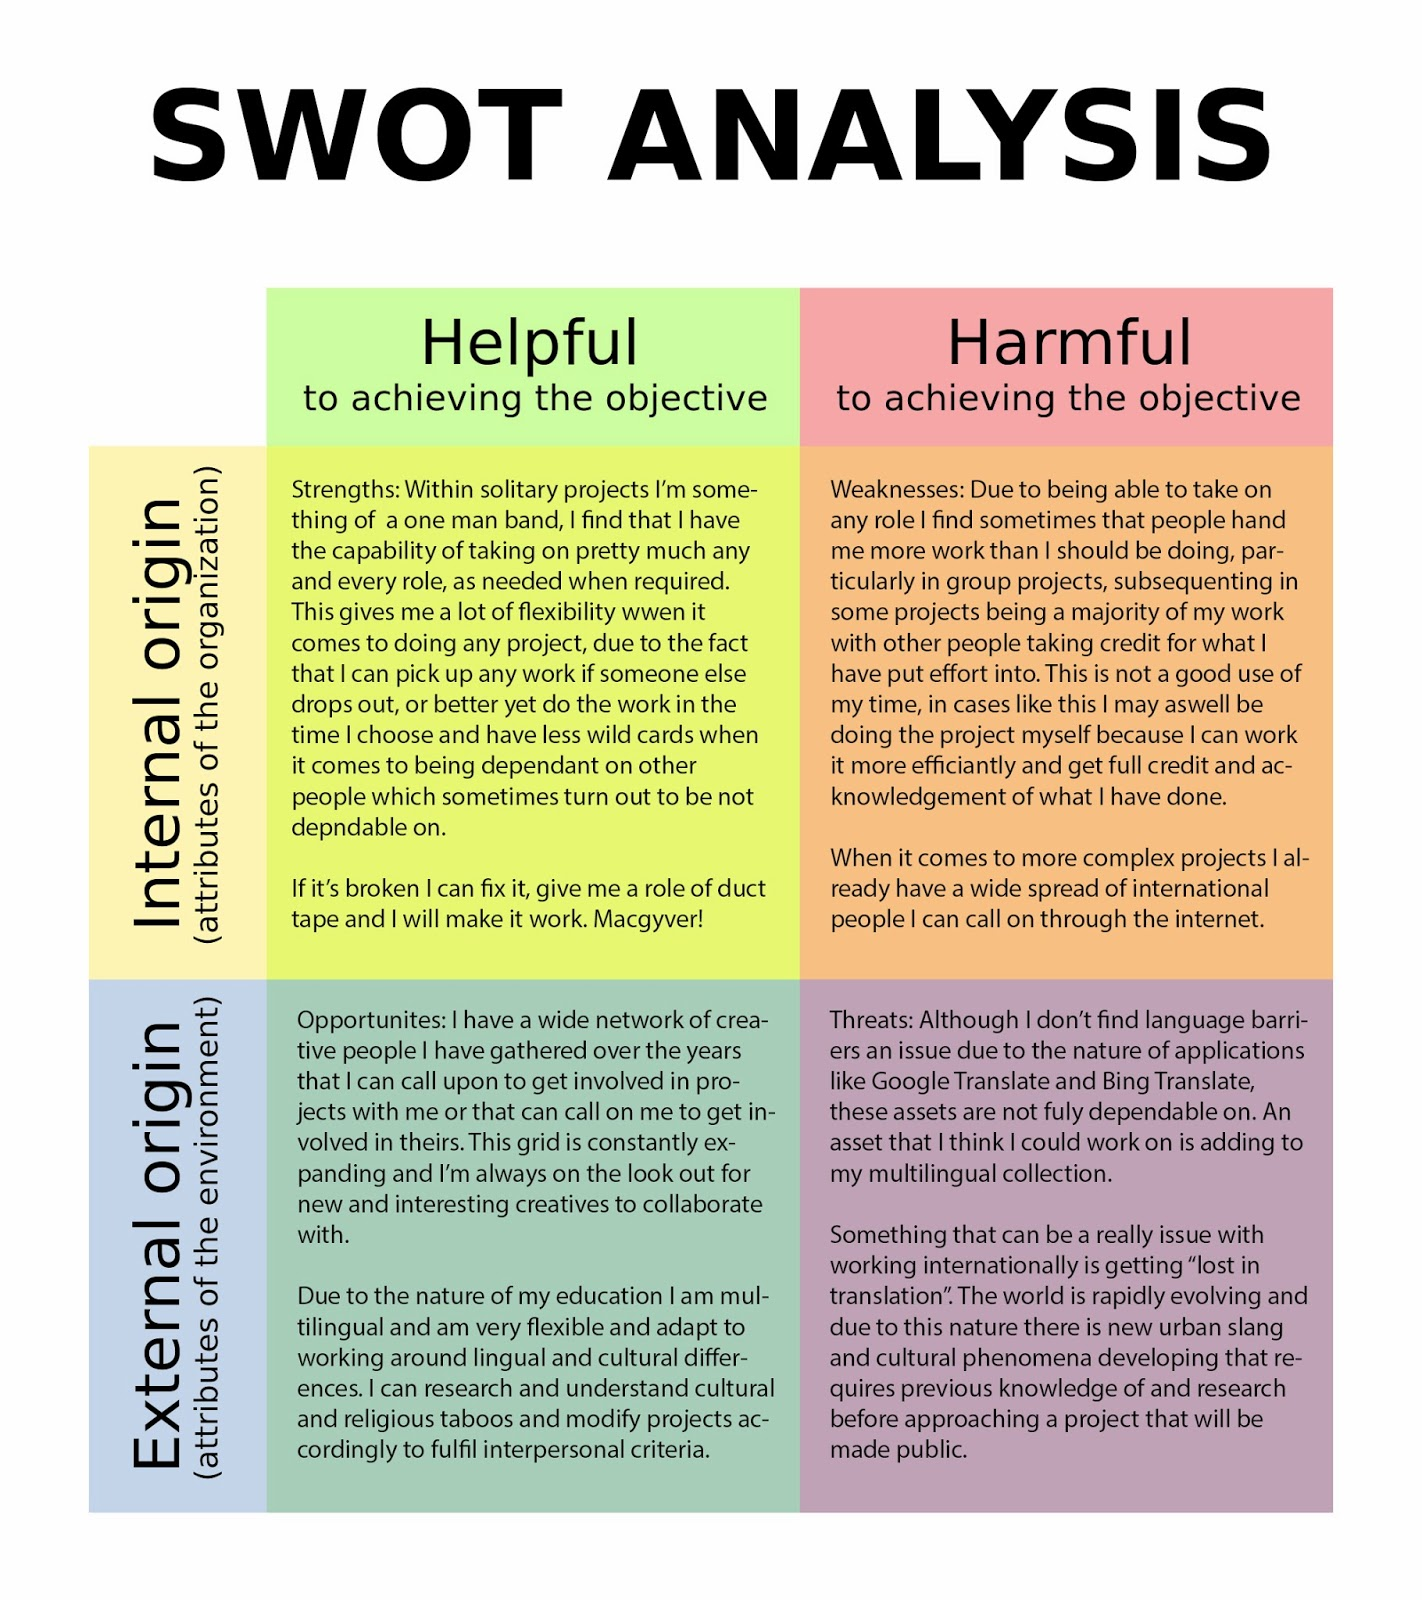 Pest analysis Philips Essay